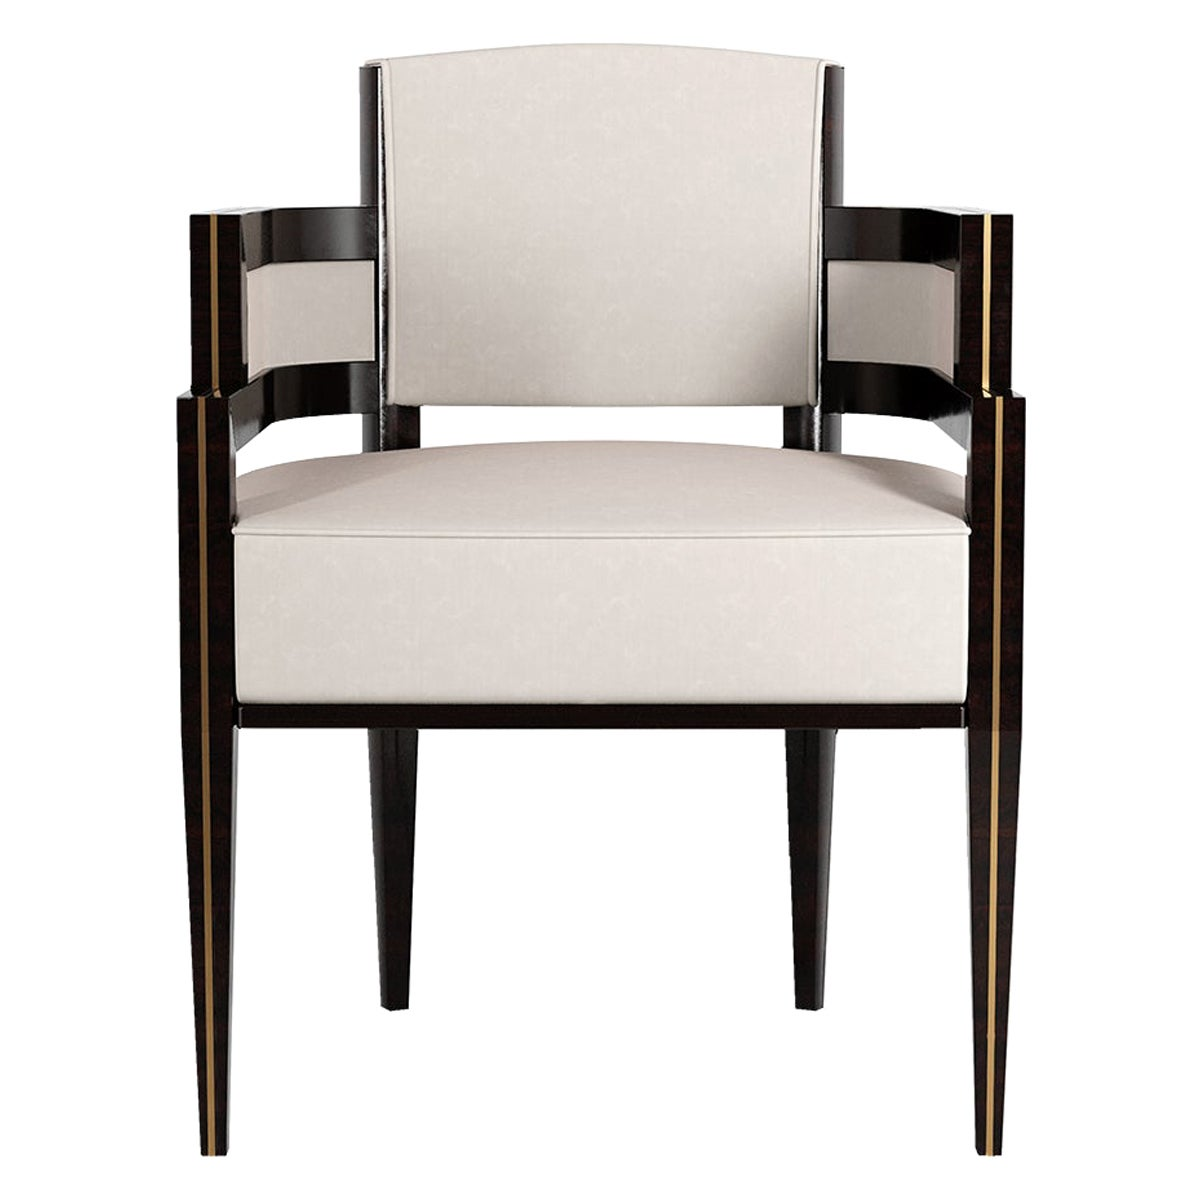 Art Deco Style White Velvet Dining Chair in Gold Polished Stainless Steel